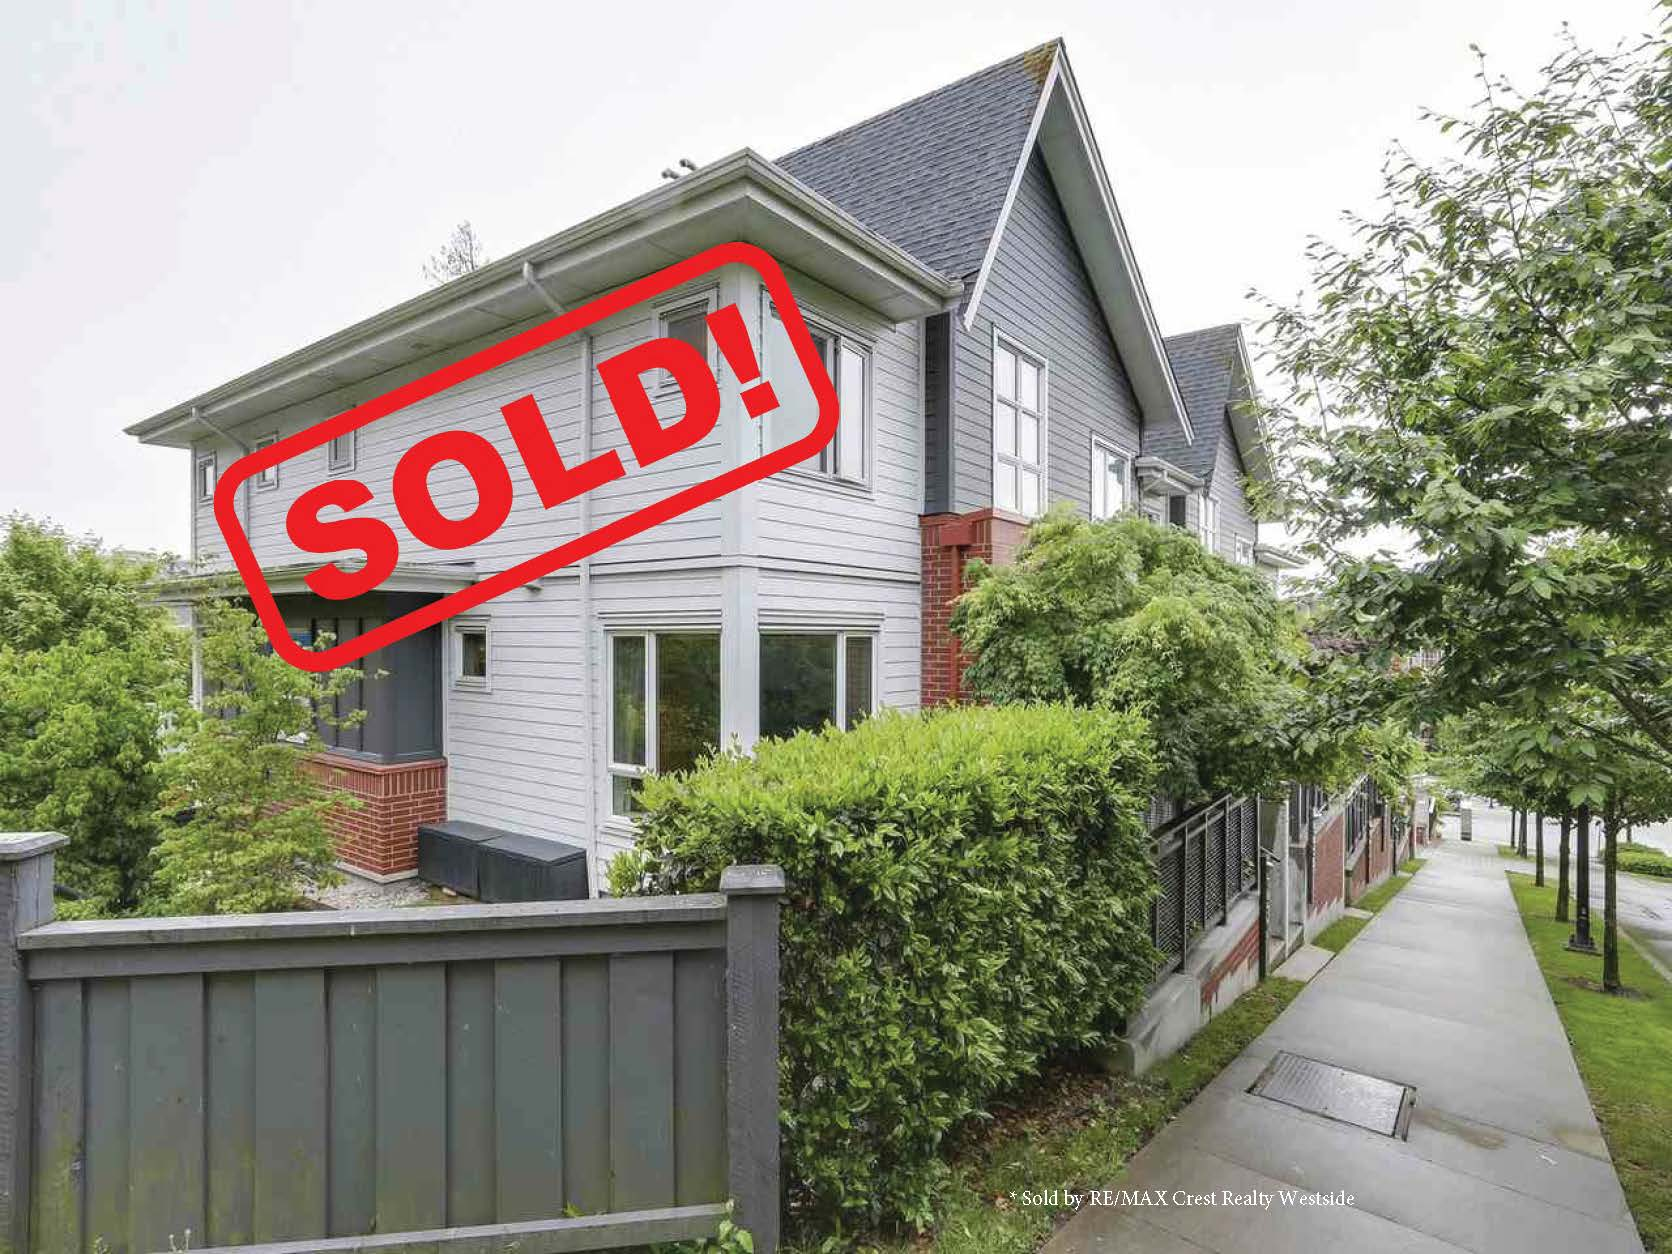 8480 Kerr Street   sold for: $980,000  3 Bed | 3 Bath | 1,300 SF